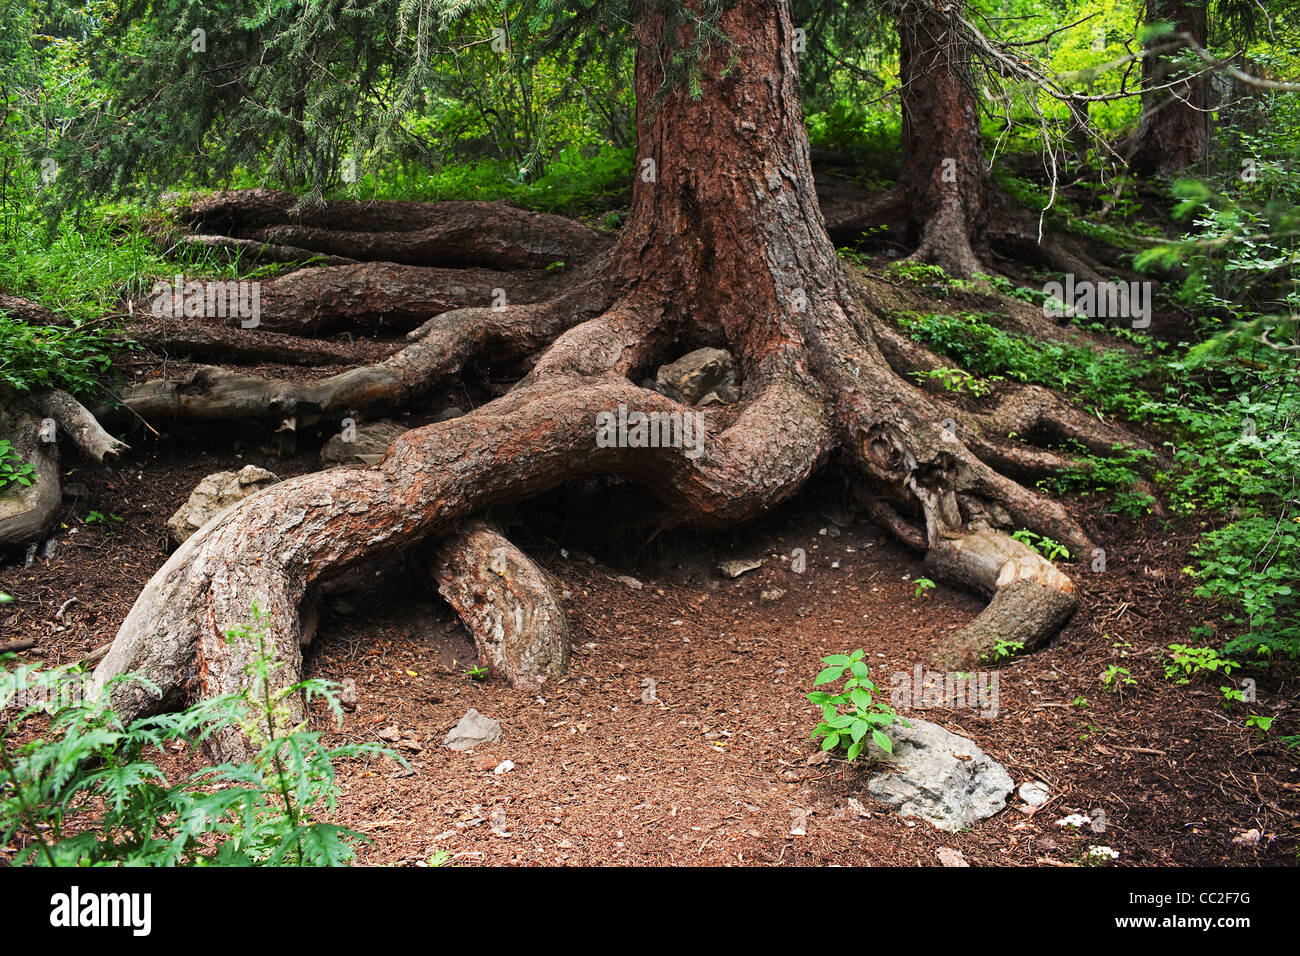 Pine tree root in summer mountain forest - Stock Image